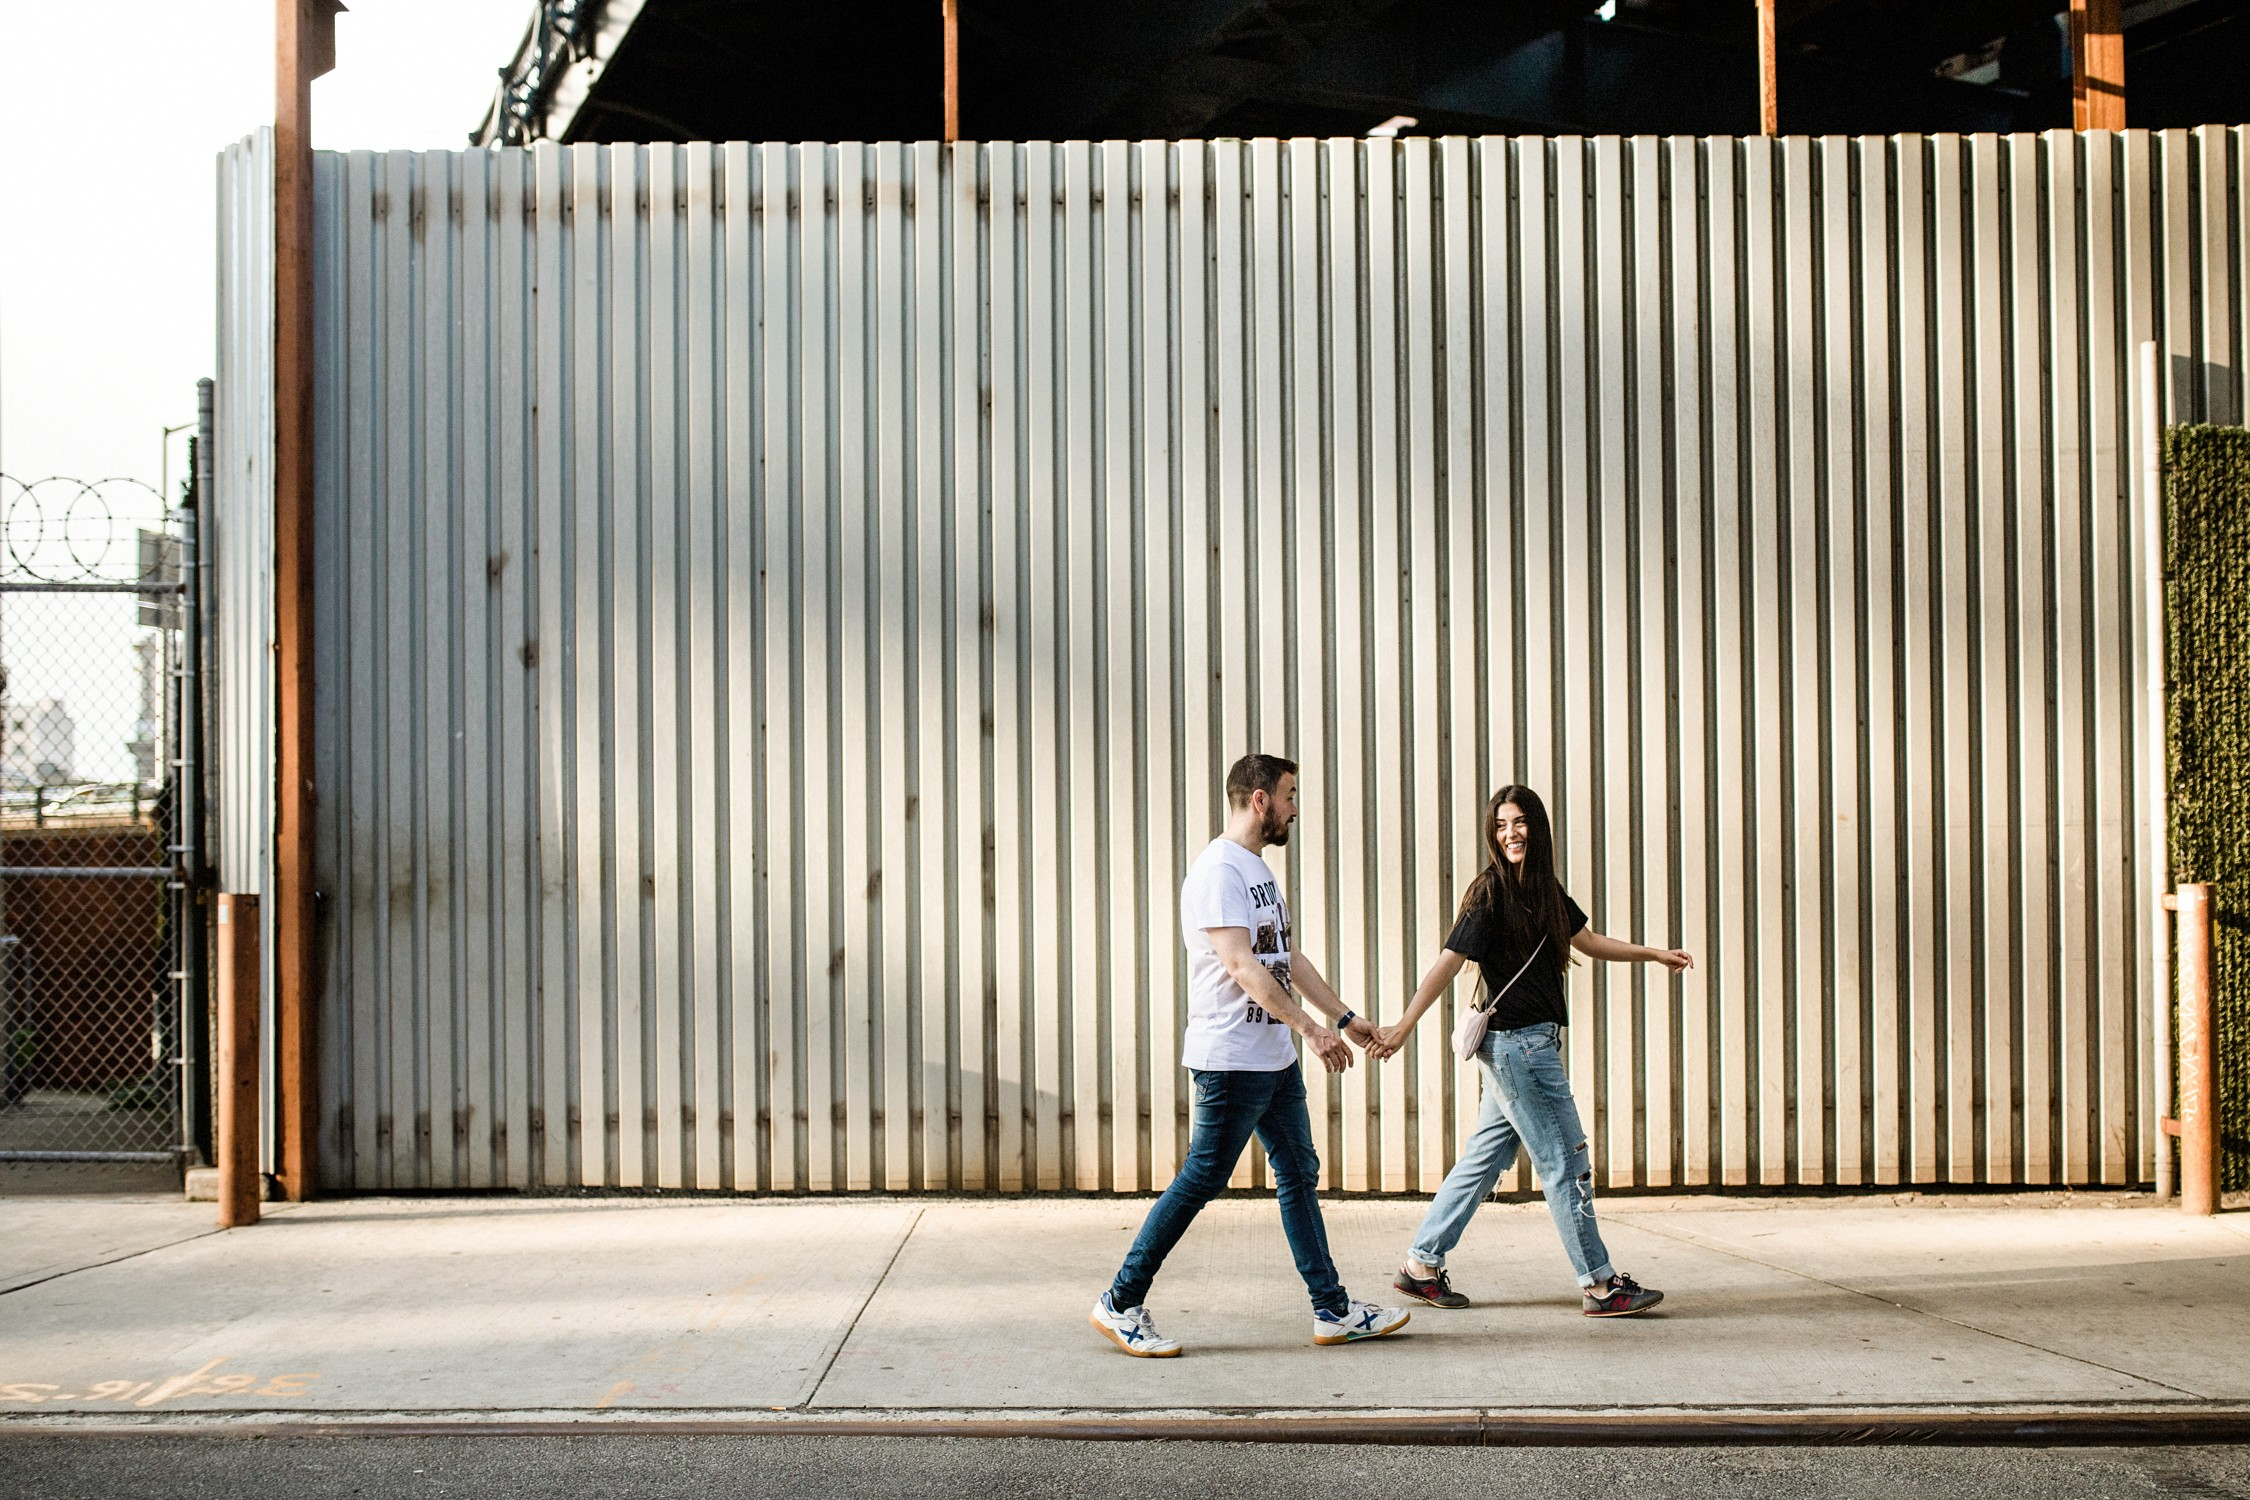 Engagement Photos in DUMBO - Couple walking in the streets below the Brooklyn Bridge